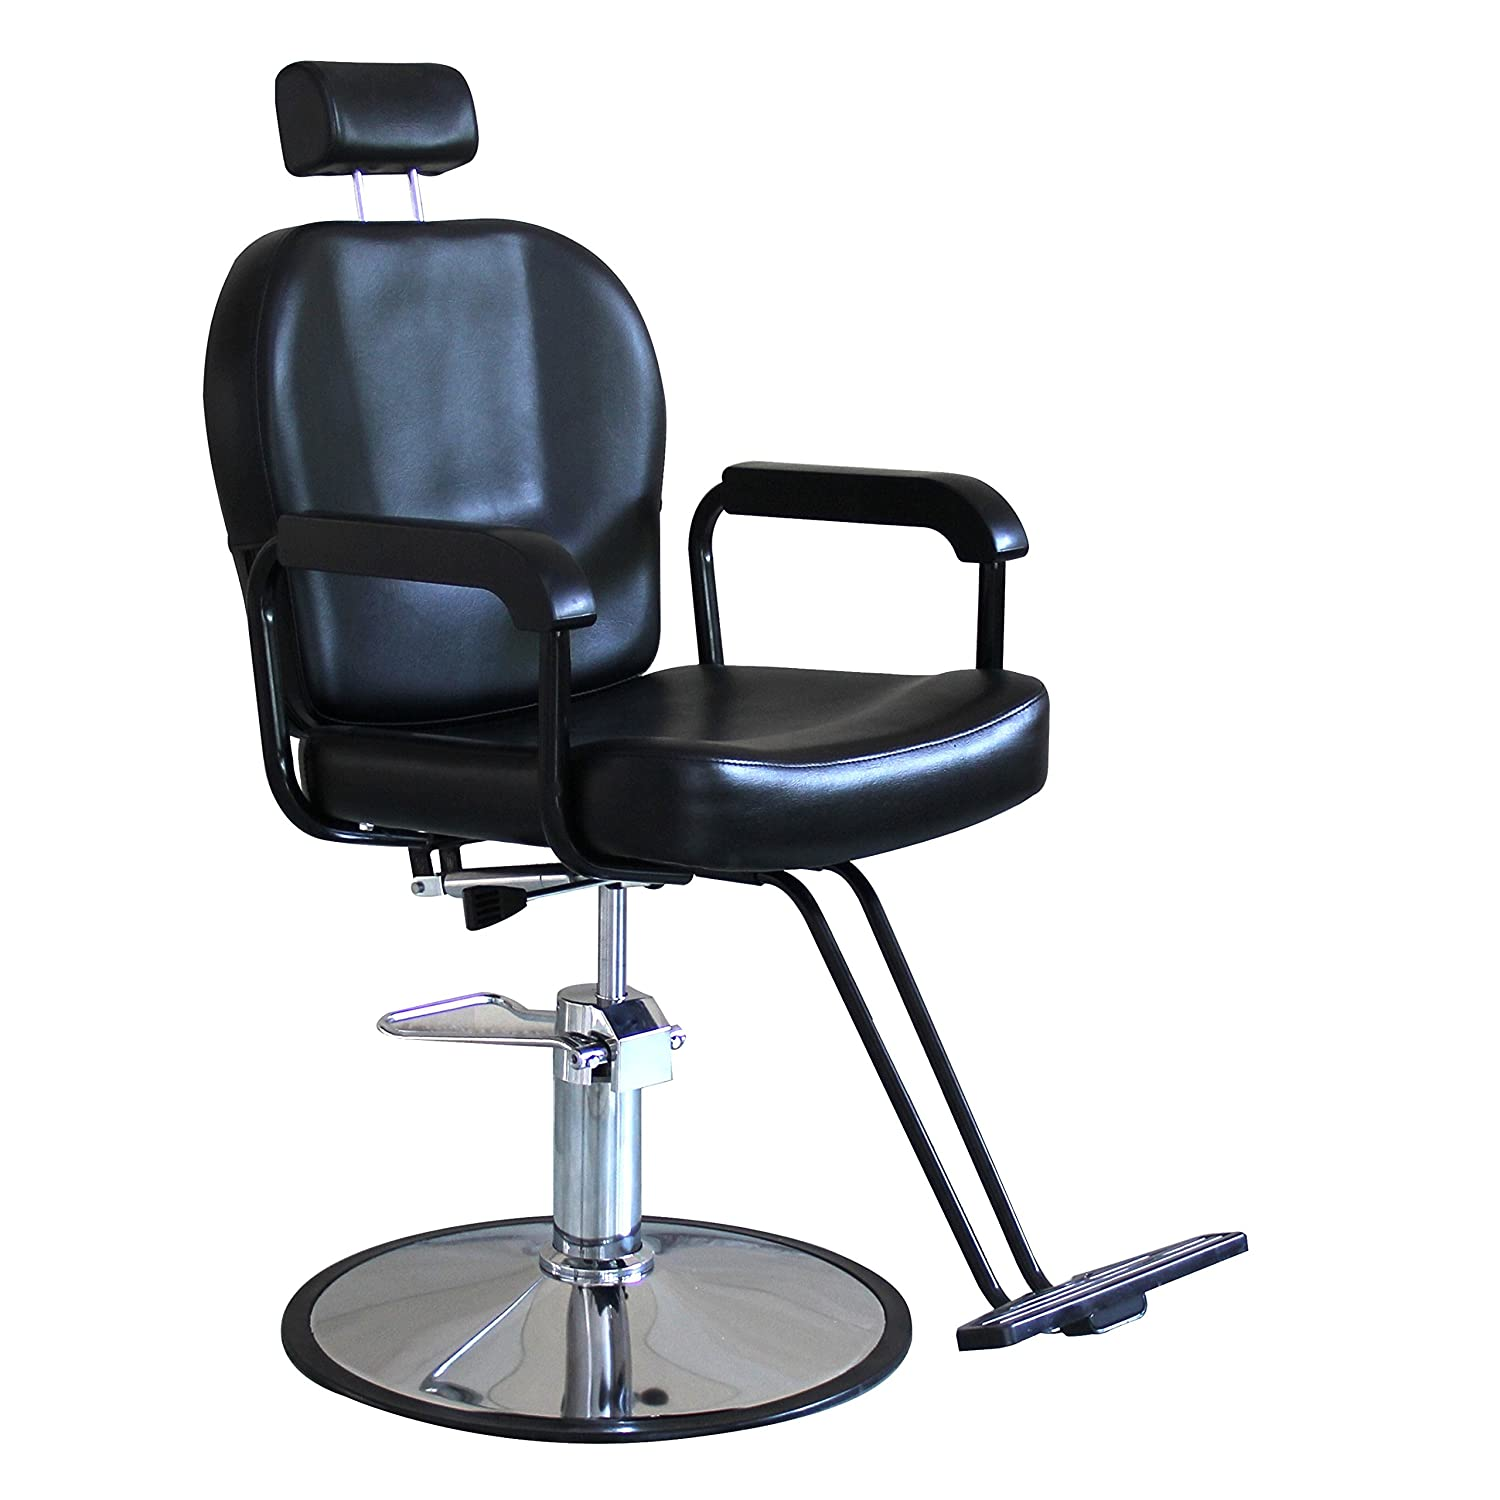 Shengyu Black Recline Hydraulic Styling Barber Chair Hair Spa Beauty Salon Equipment